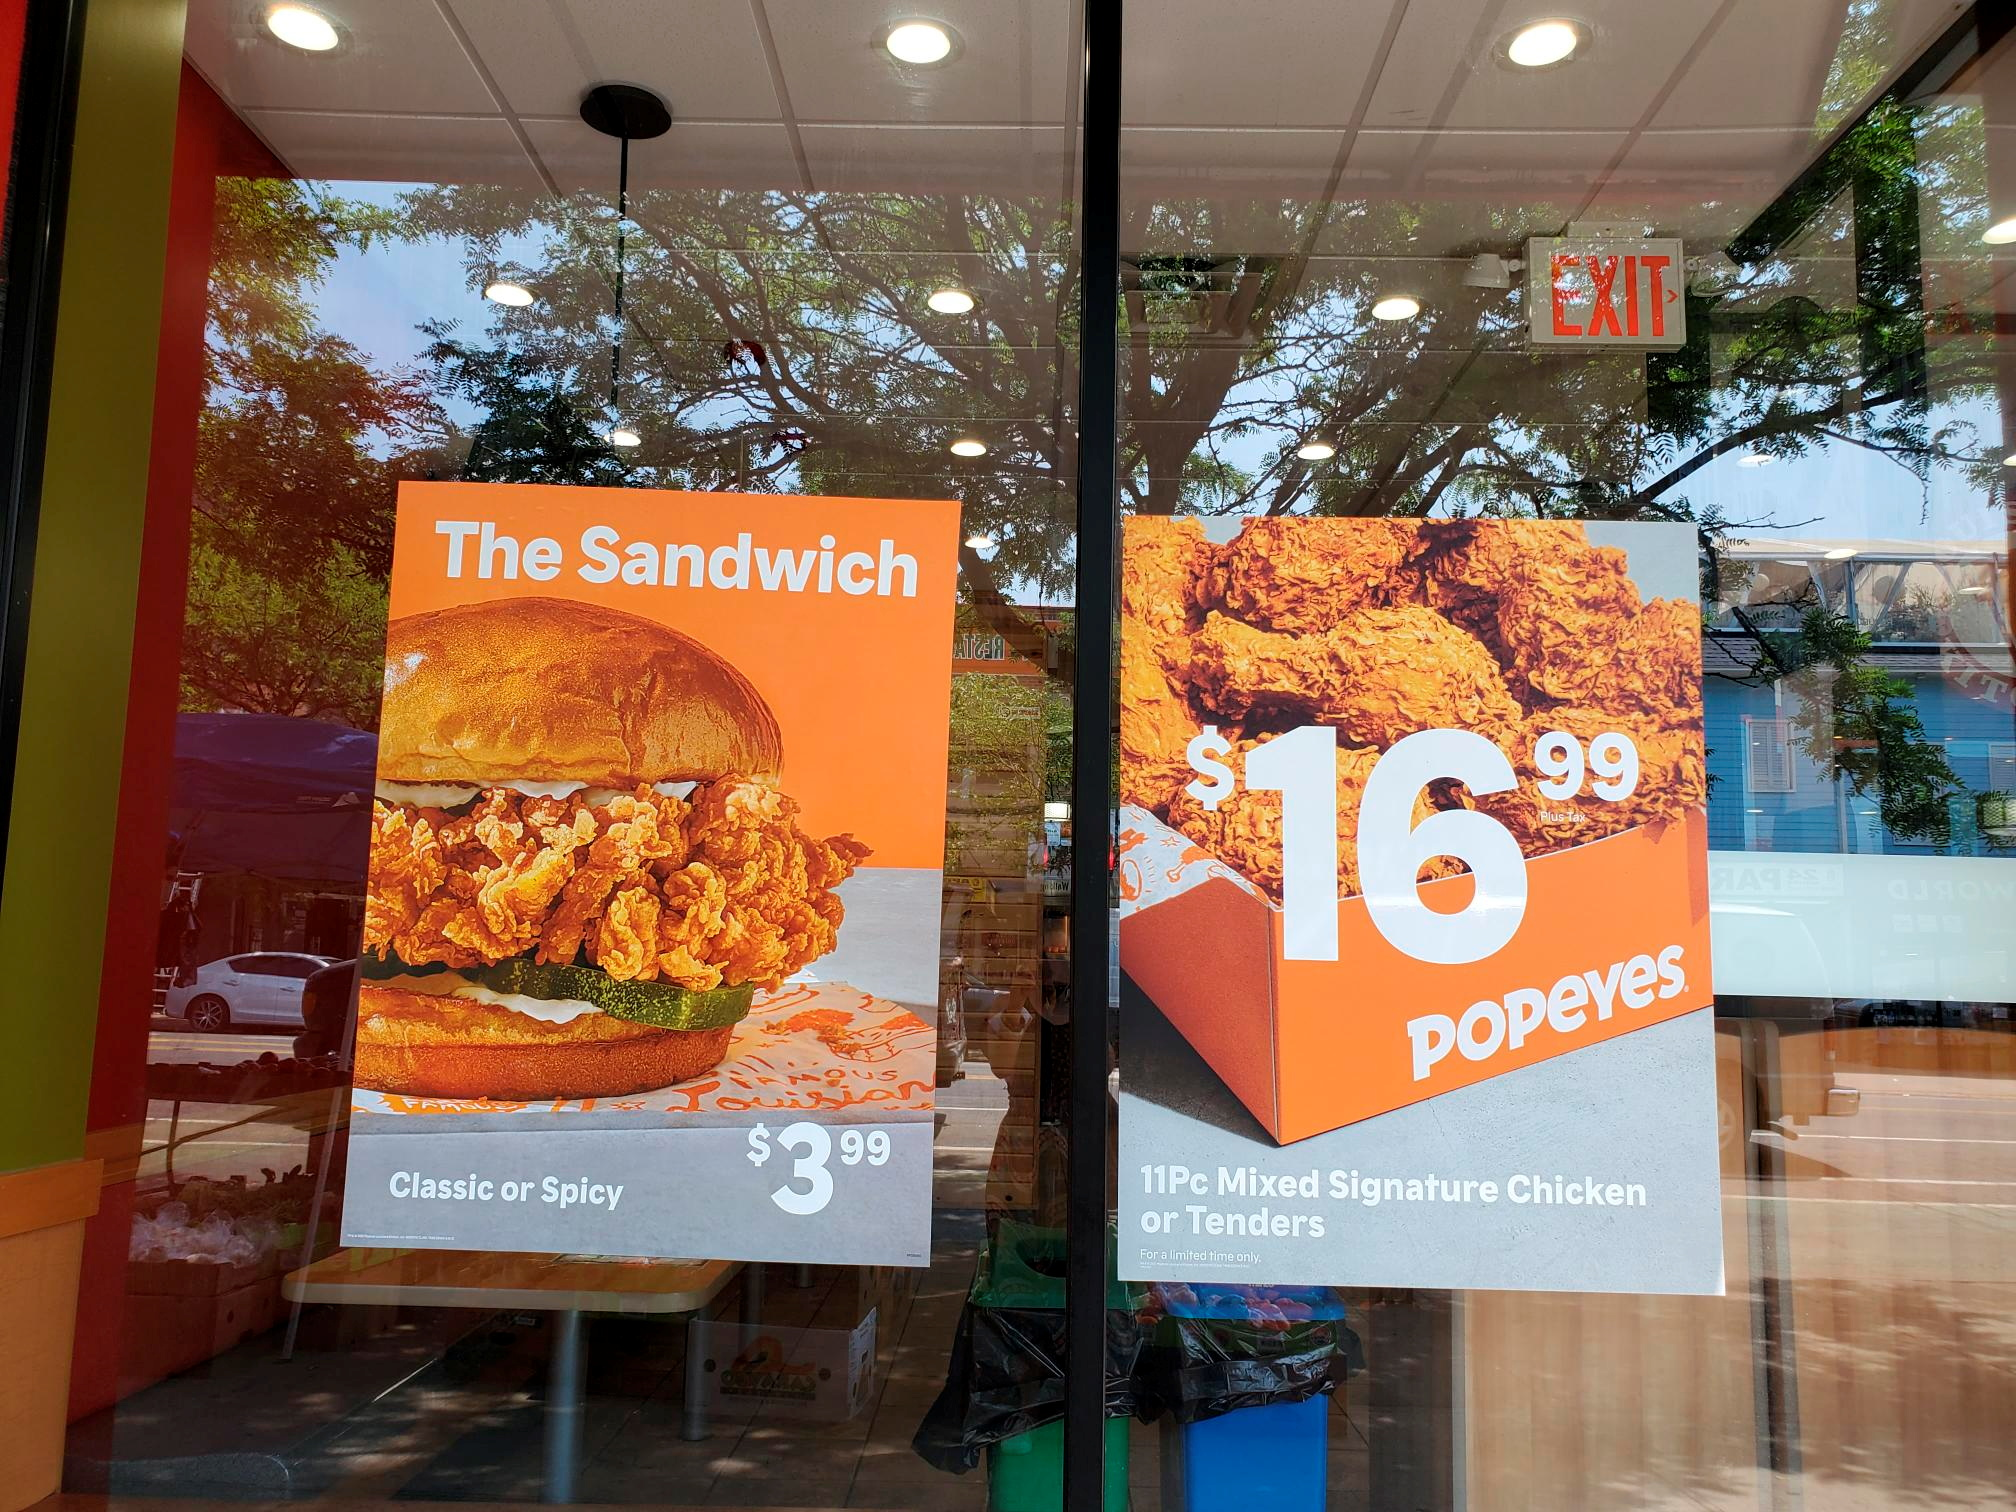 Signs advertising a box of fried chicken for $16.99 and a sandwich are seen at a Popeyes restaurant in New York City, New York, U.S. May 26, 2021. Picture taken May 26, 2021. REUTERS/Hilary Russ